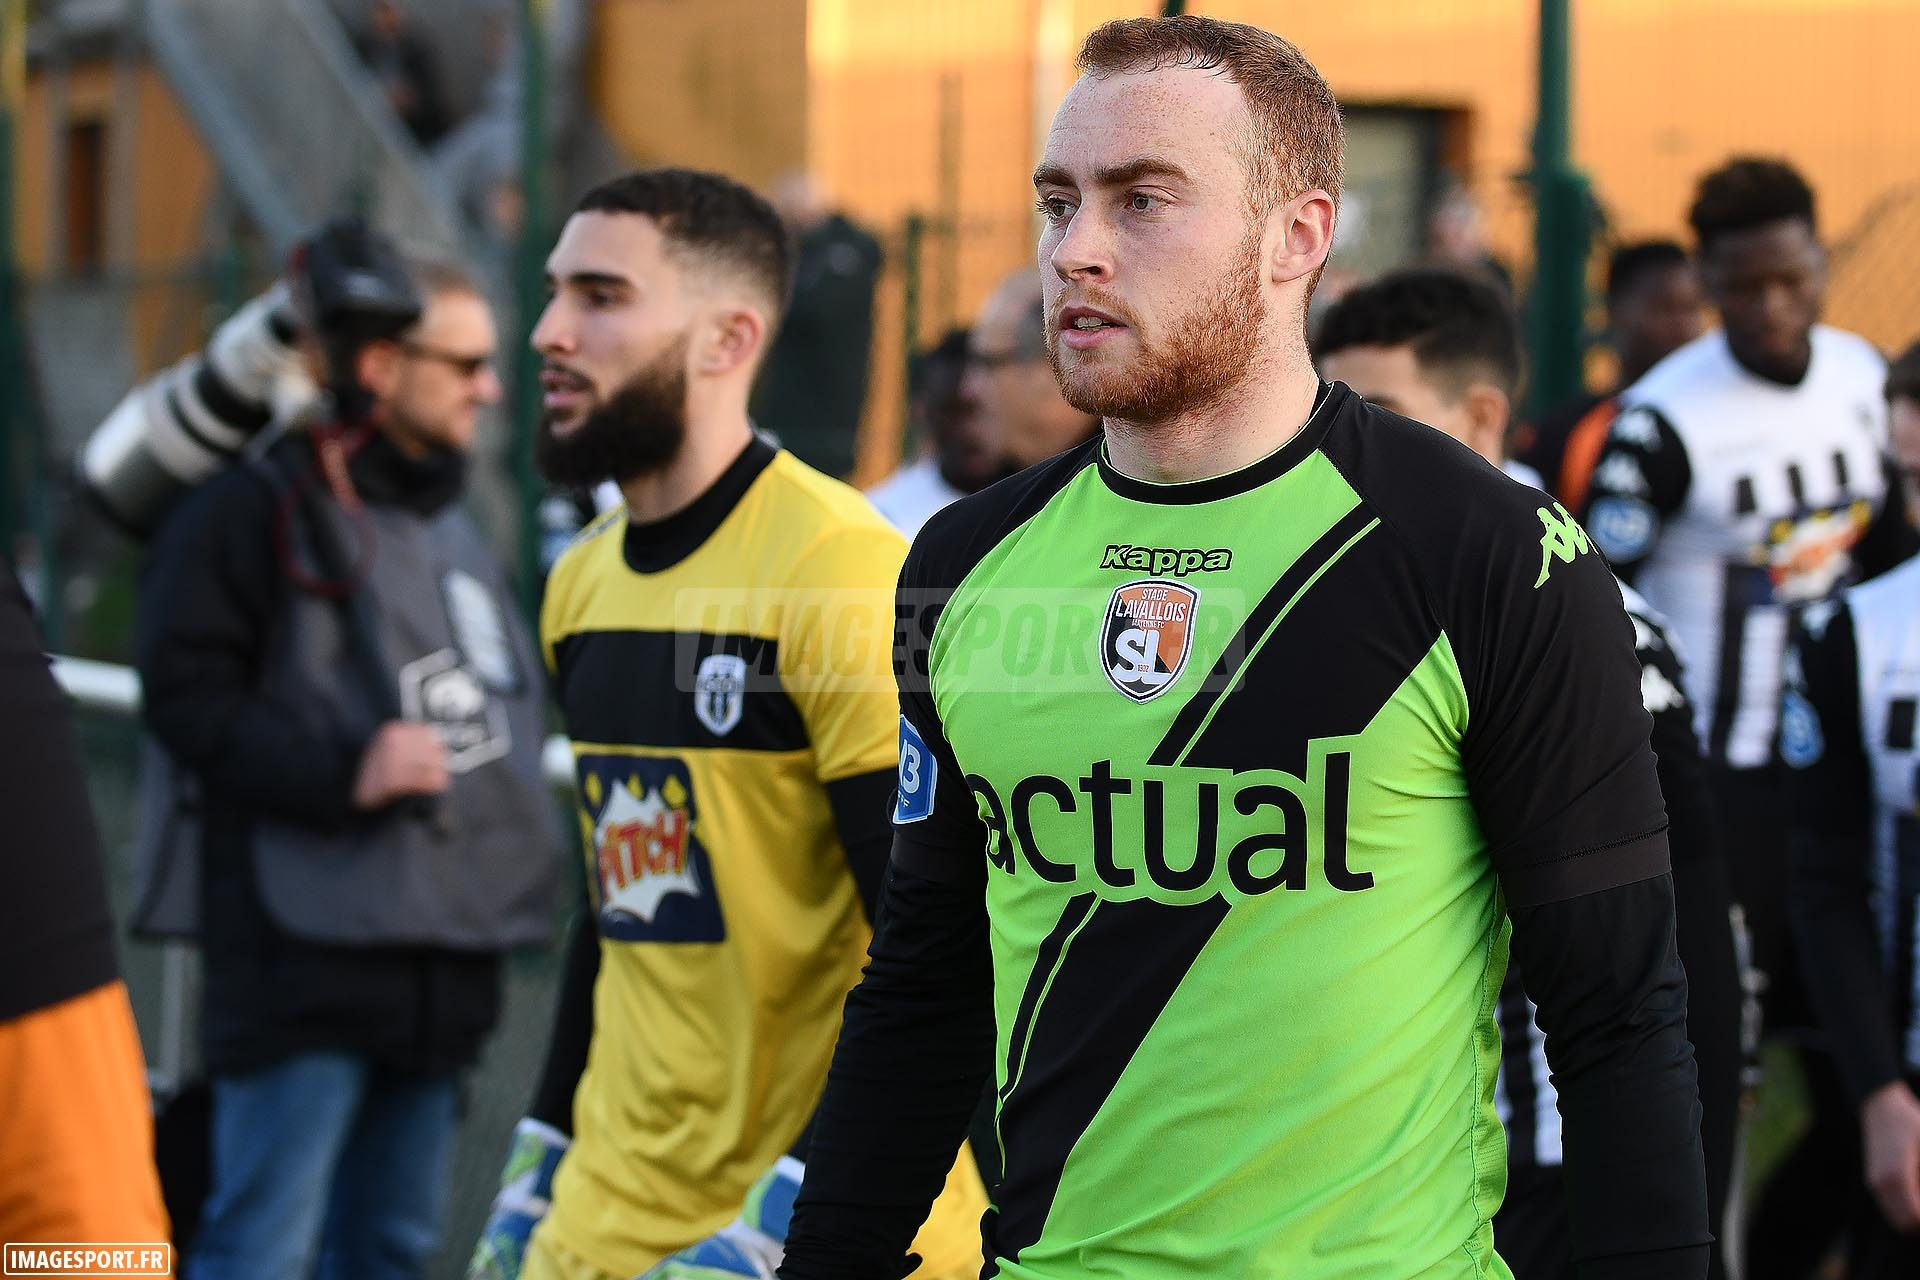 national3-laval-angers-football_04